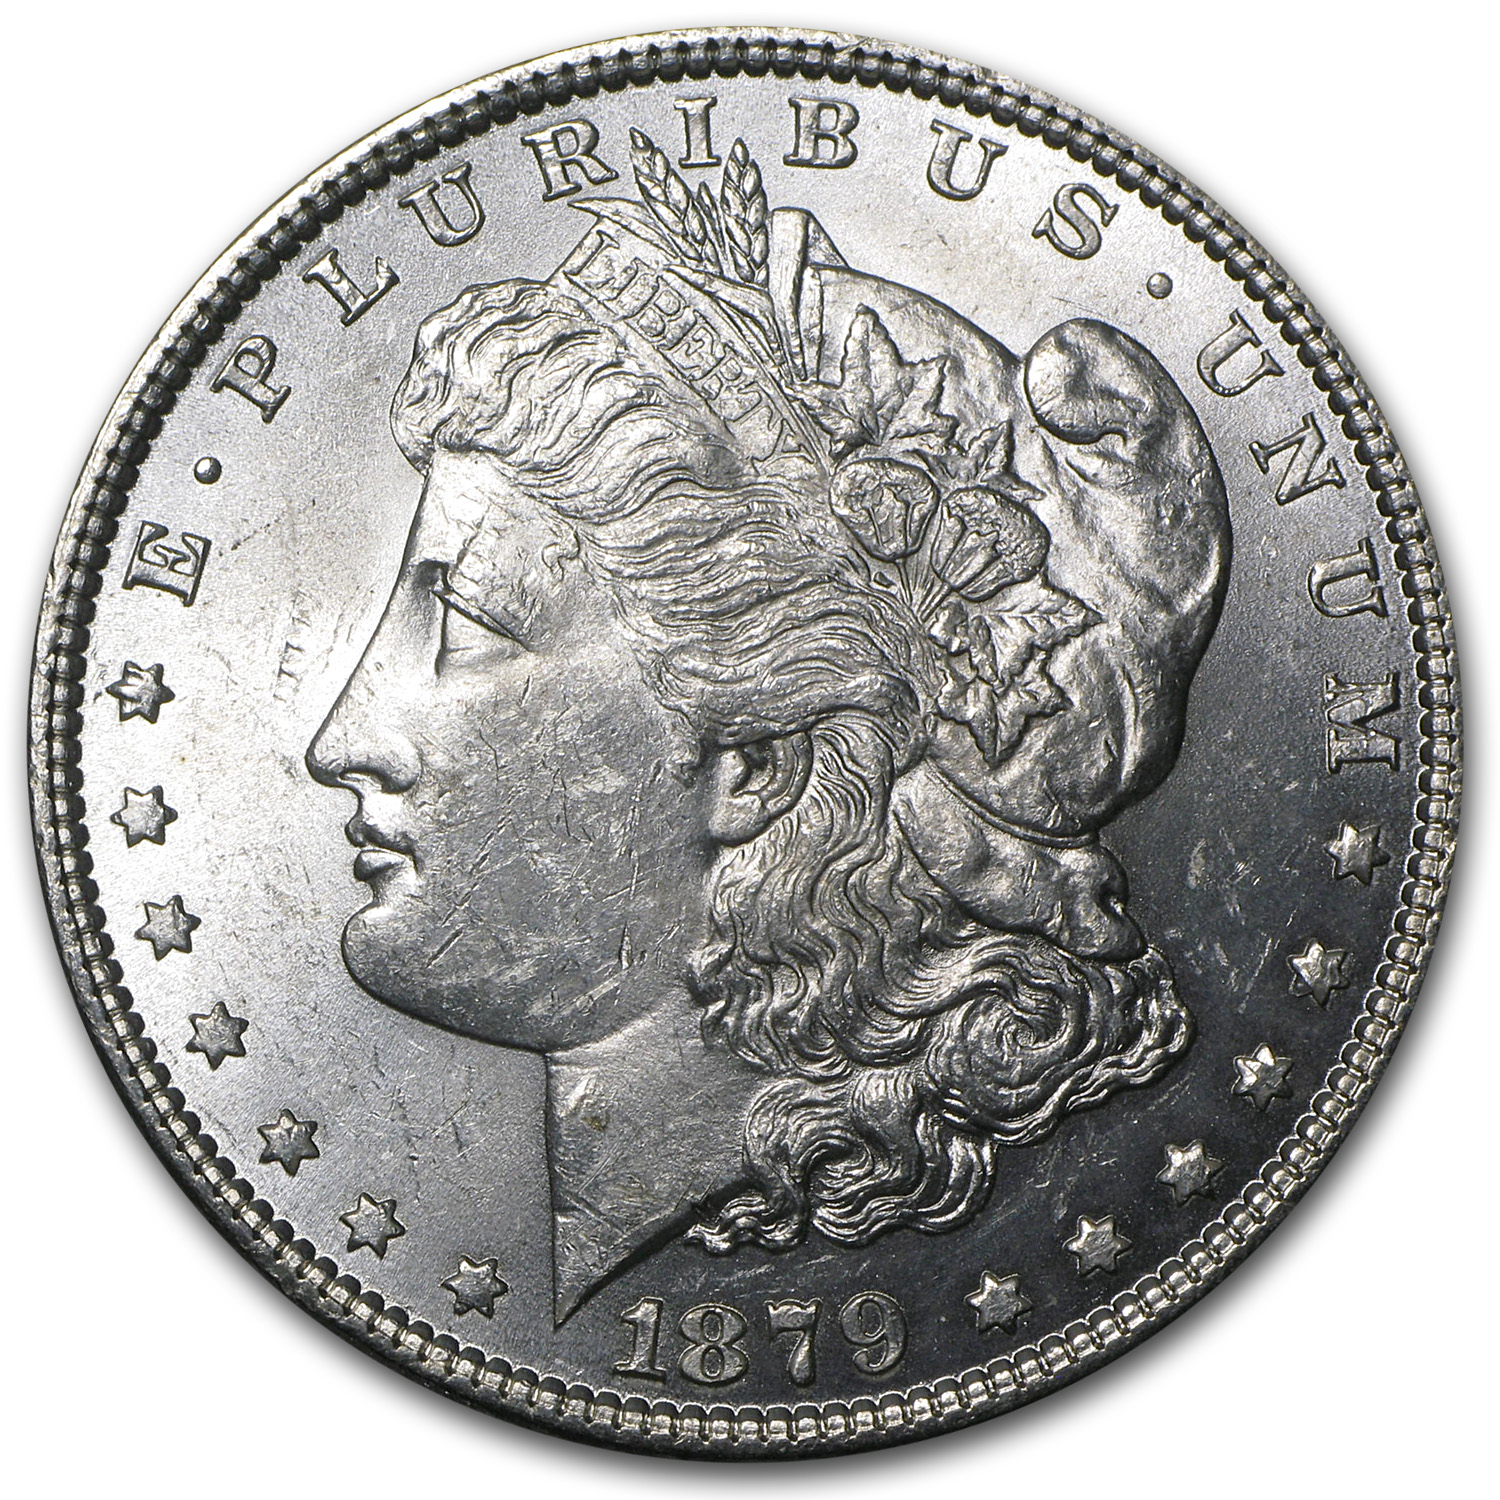 1879 Morgan Dollar - Brilliant Uncirculated